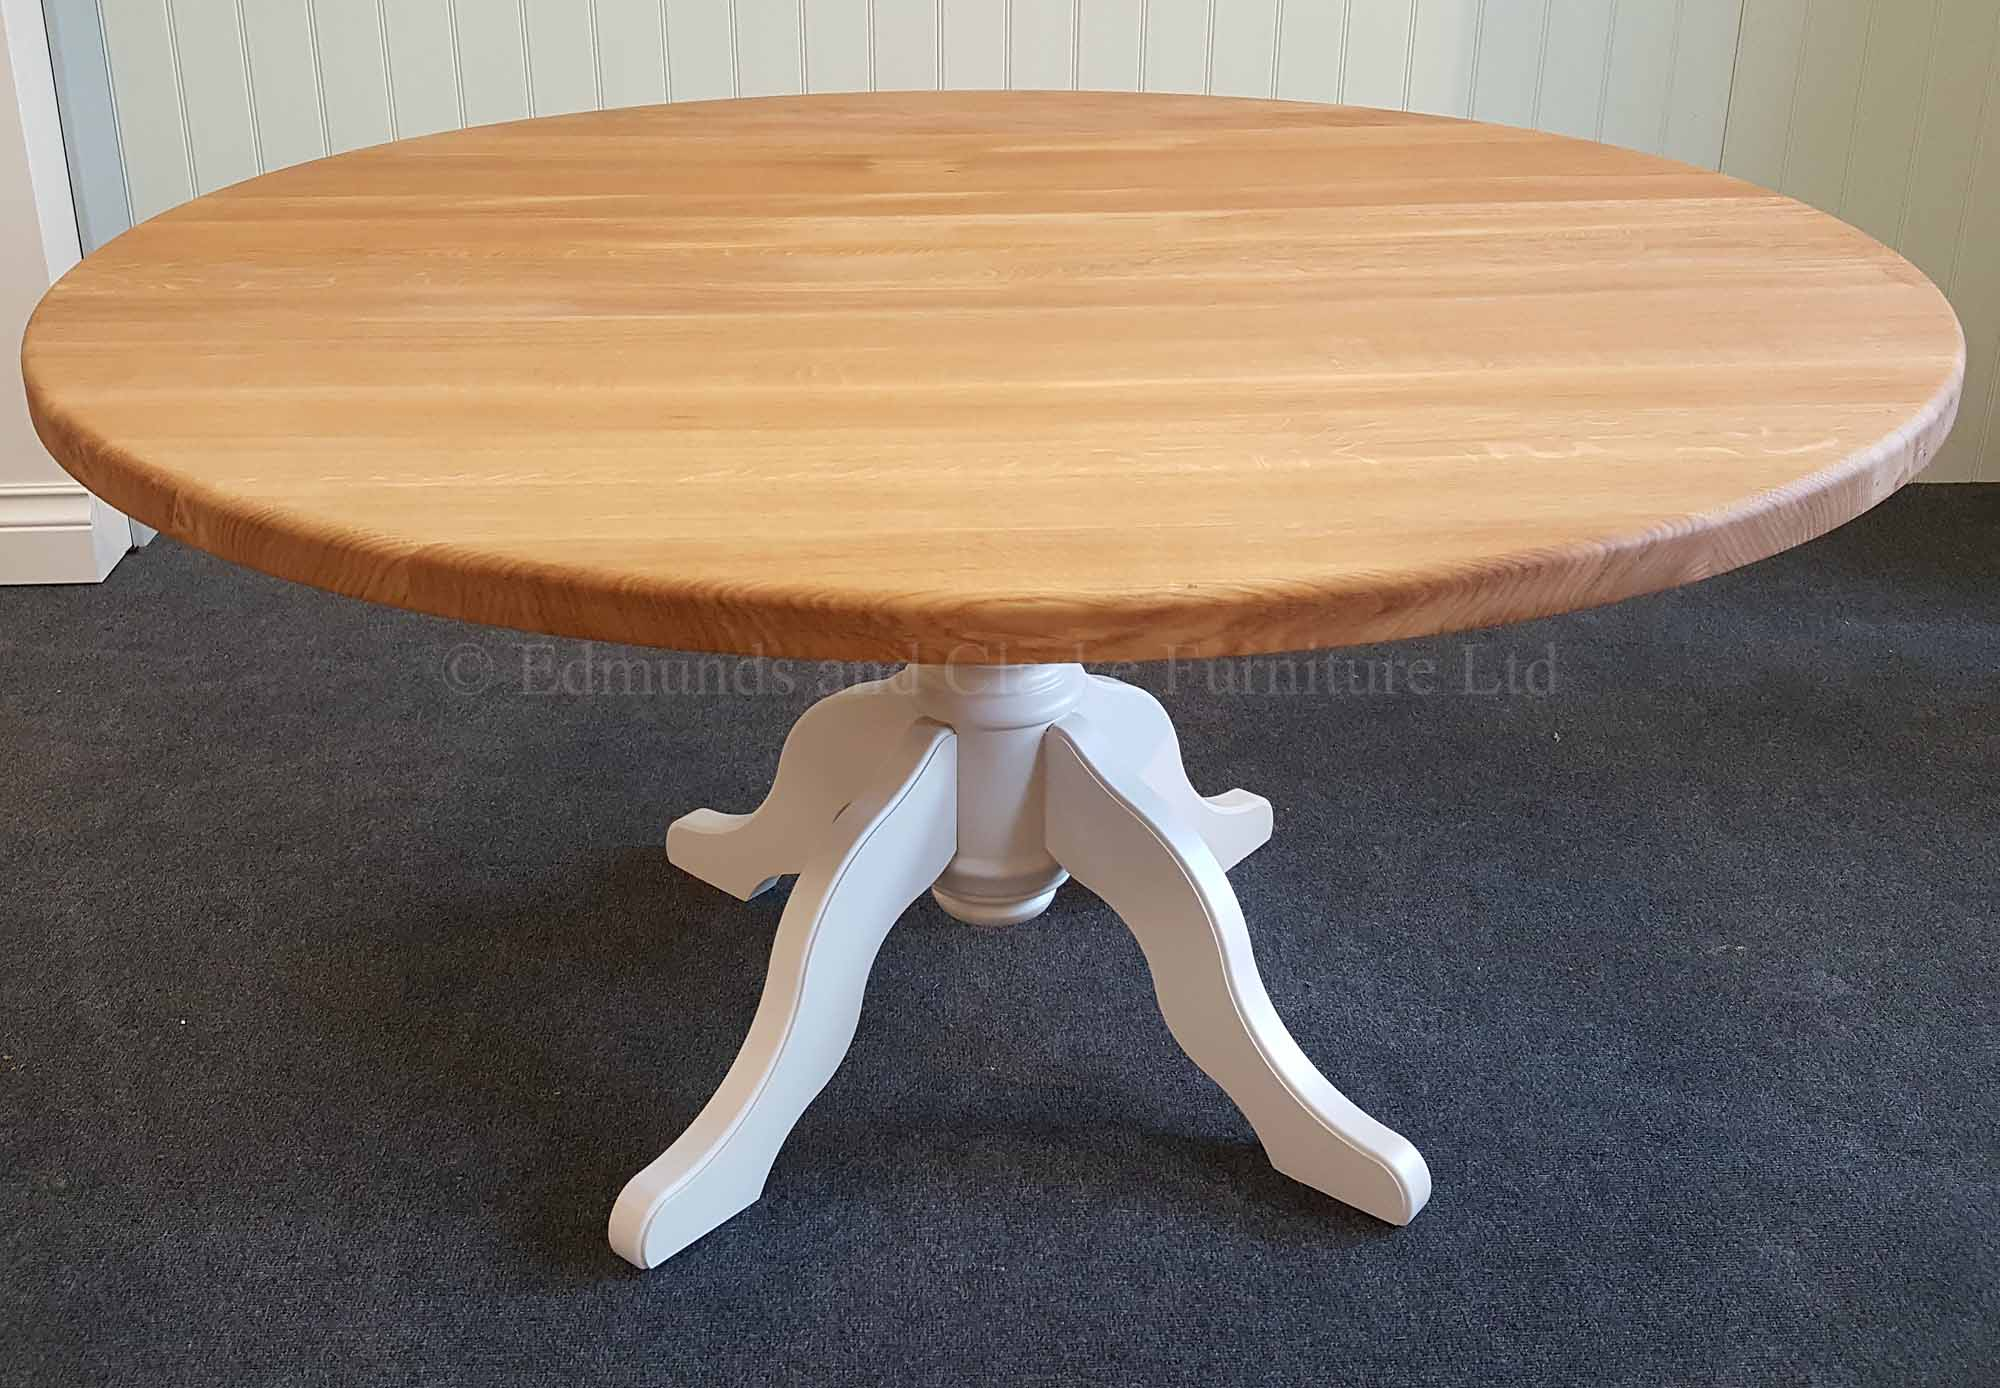 5' Round circular dining table, painted pedestal and choice of tops